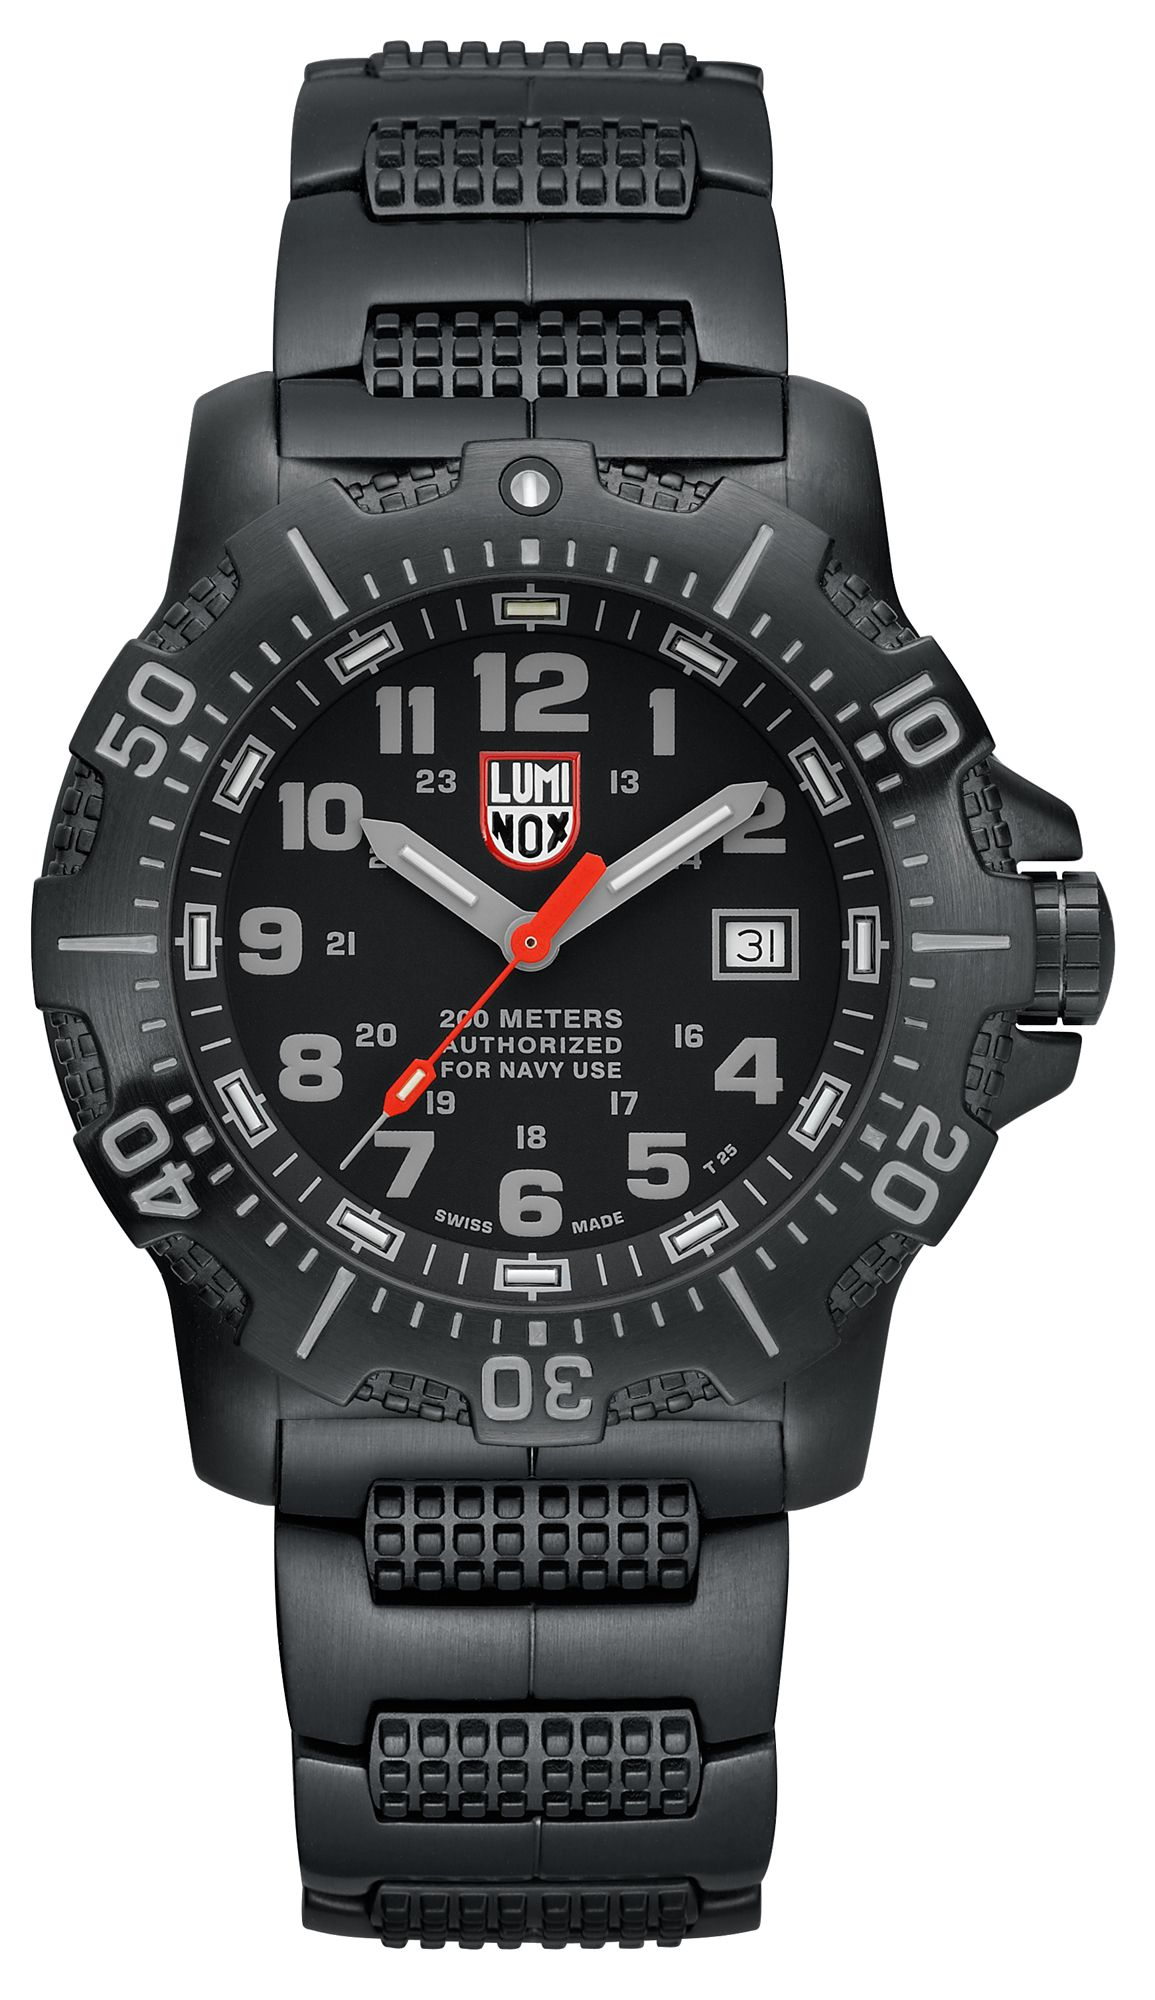 39ec99948 ANU (Authorized for Navy Use) - 4221 | Naval Academy | Watches ...